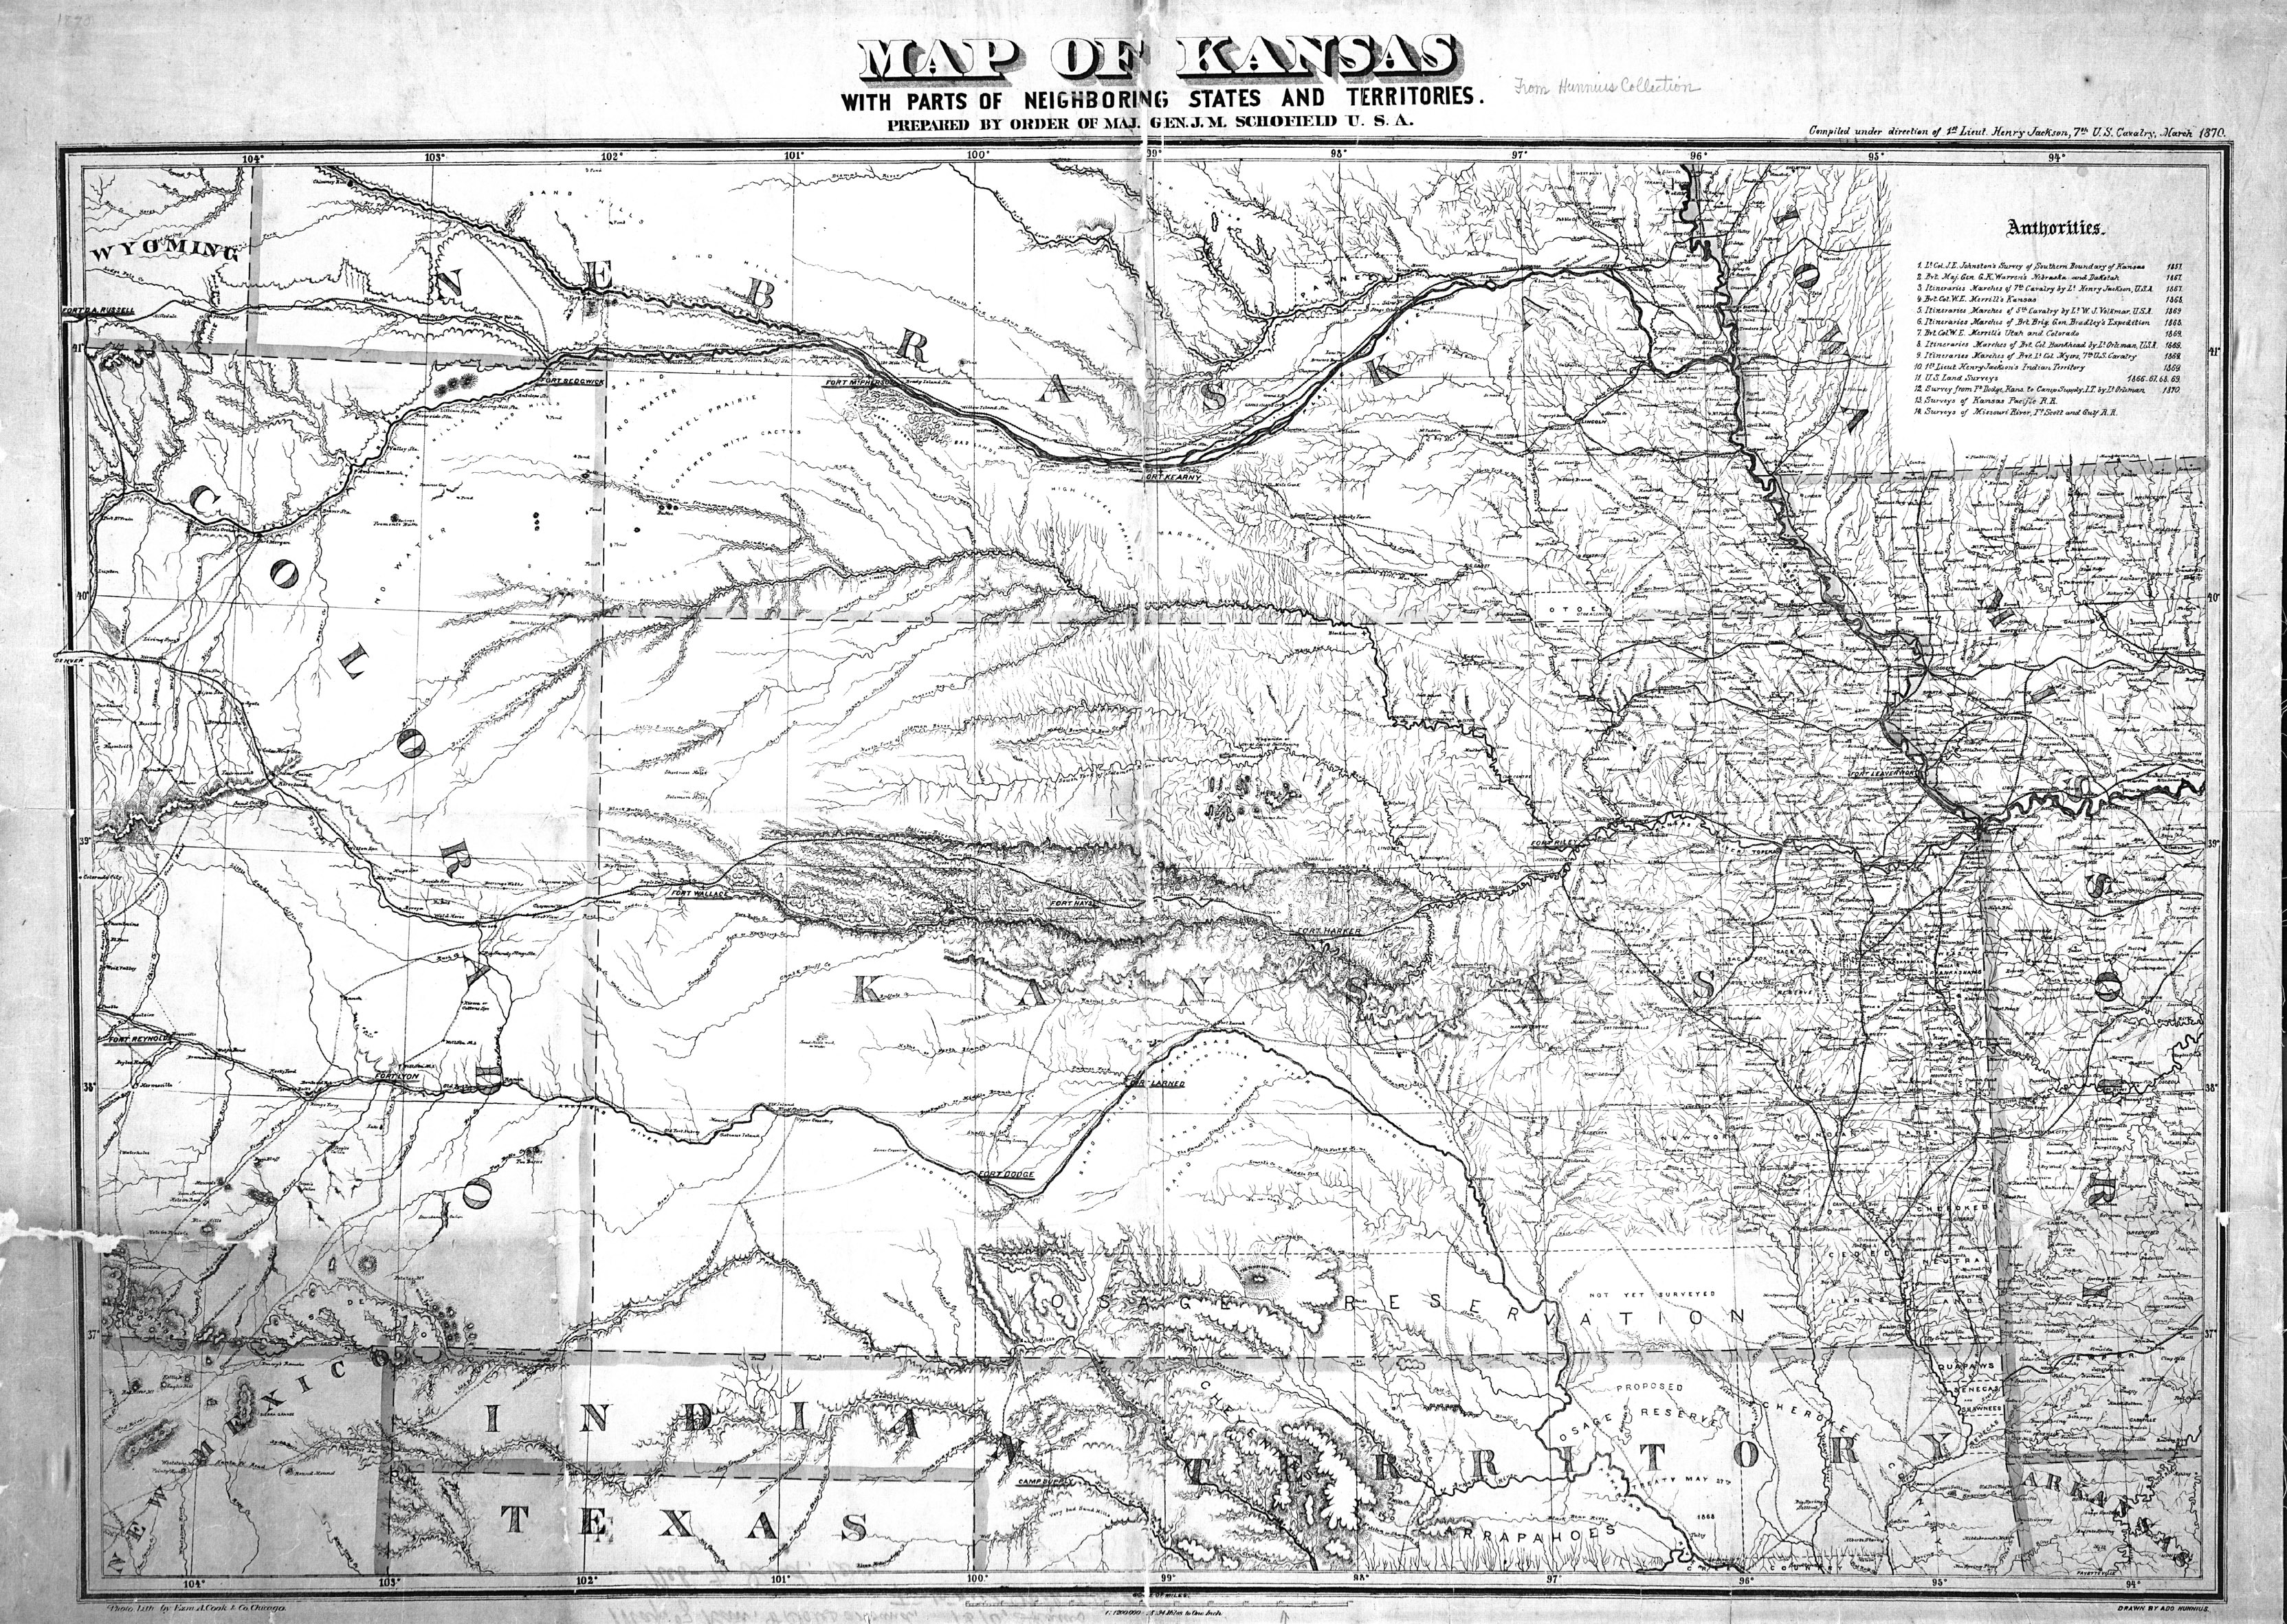 Map of Kansas, with parts of neighboring states and territories ...